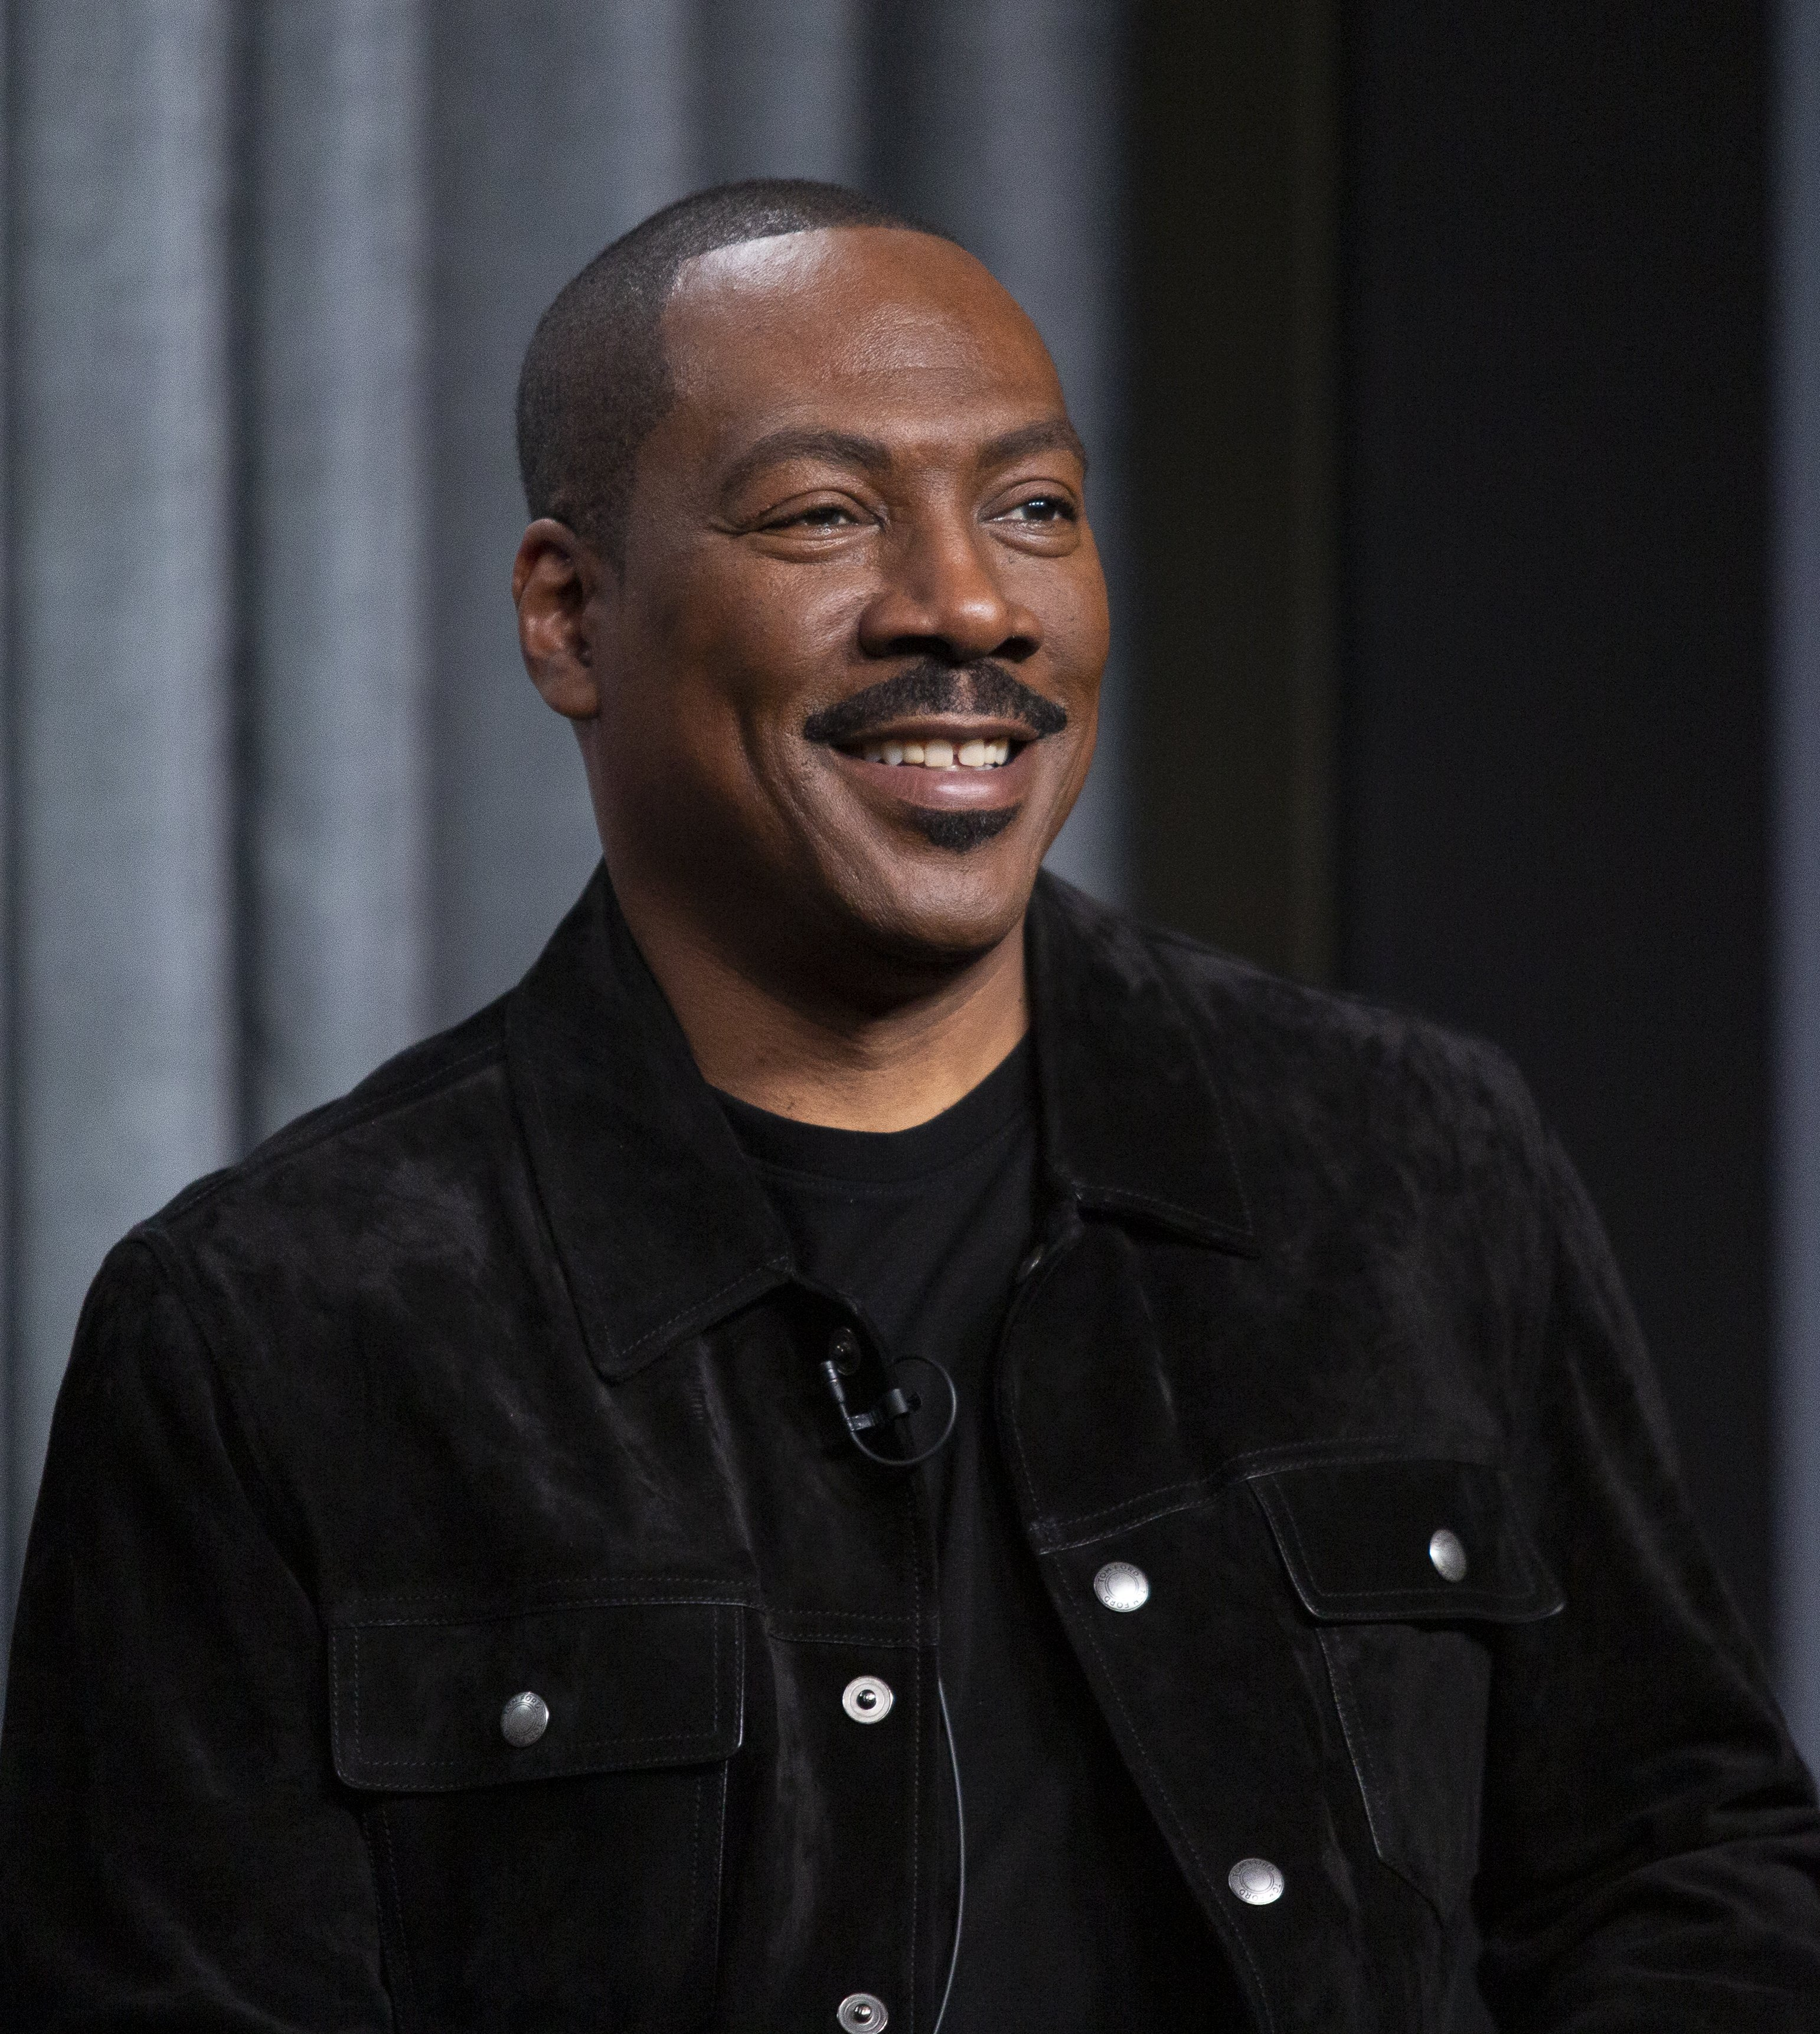 Eddie Murphy at the SAG-AFTRA Foundation Conversations Presents The Career of Eddie Murphy, 2019 in Los Angeles, California   Source: Getty Images